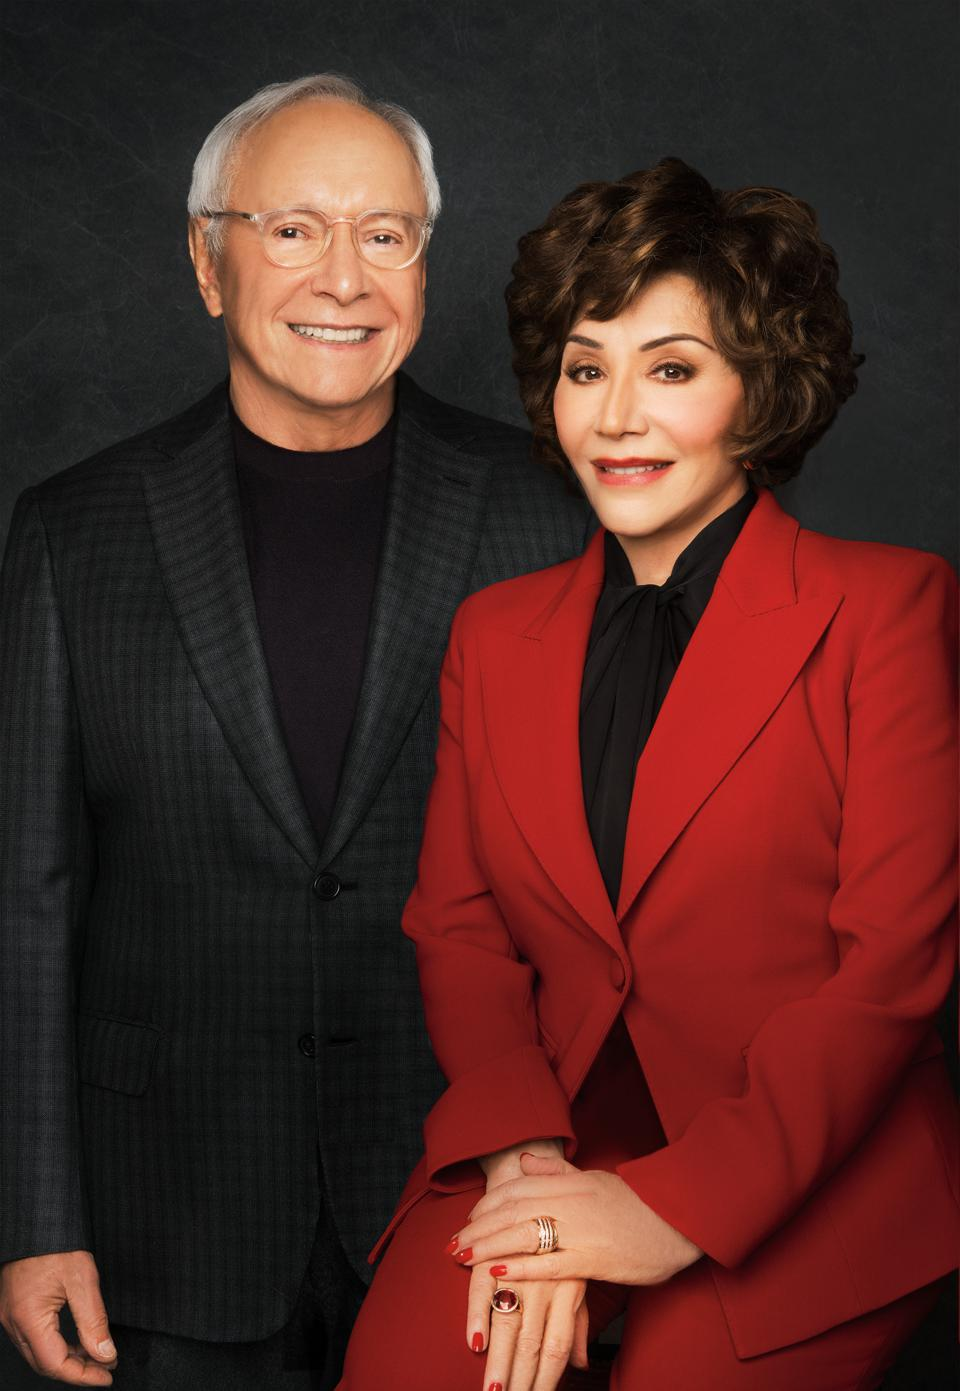 Stewart and Lynda Resnick, the billionaire owners of The Wonderful Company.